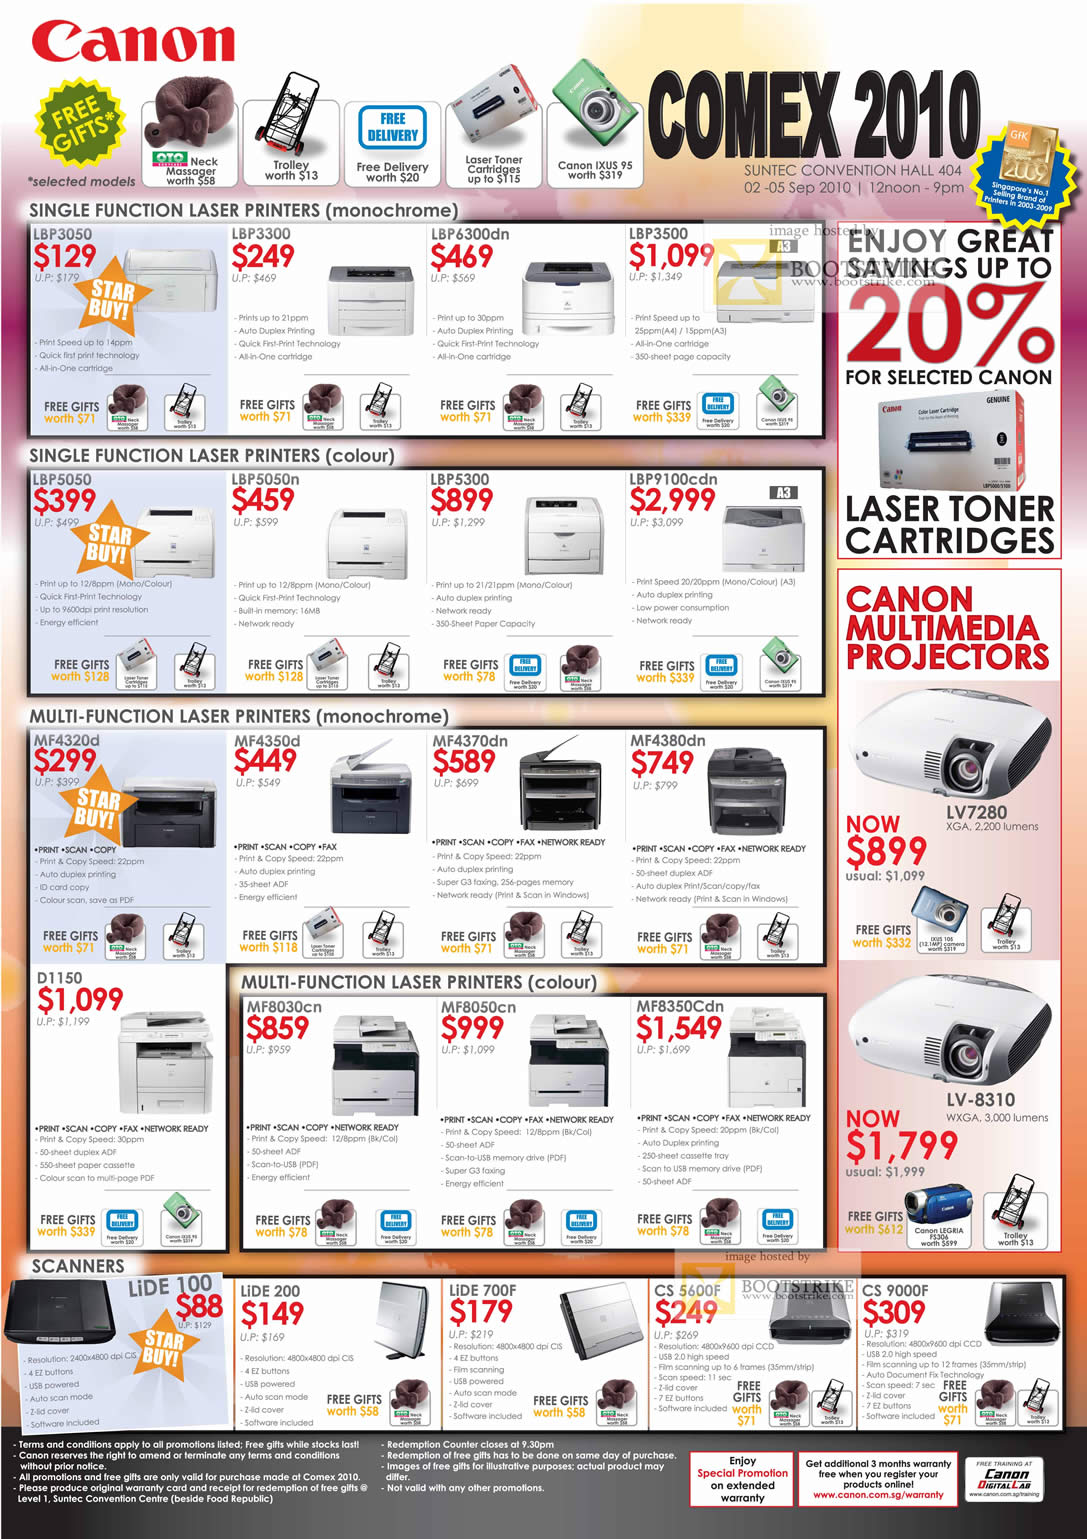 canon price list Find canon eos 40d prices and learn where to buy cnet brings you pricing information for retailers, as well as reviews, ratings, specs and more.